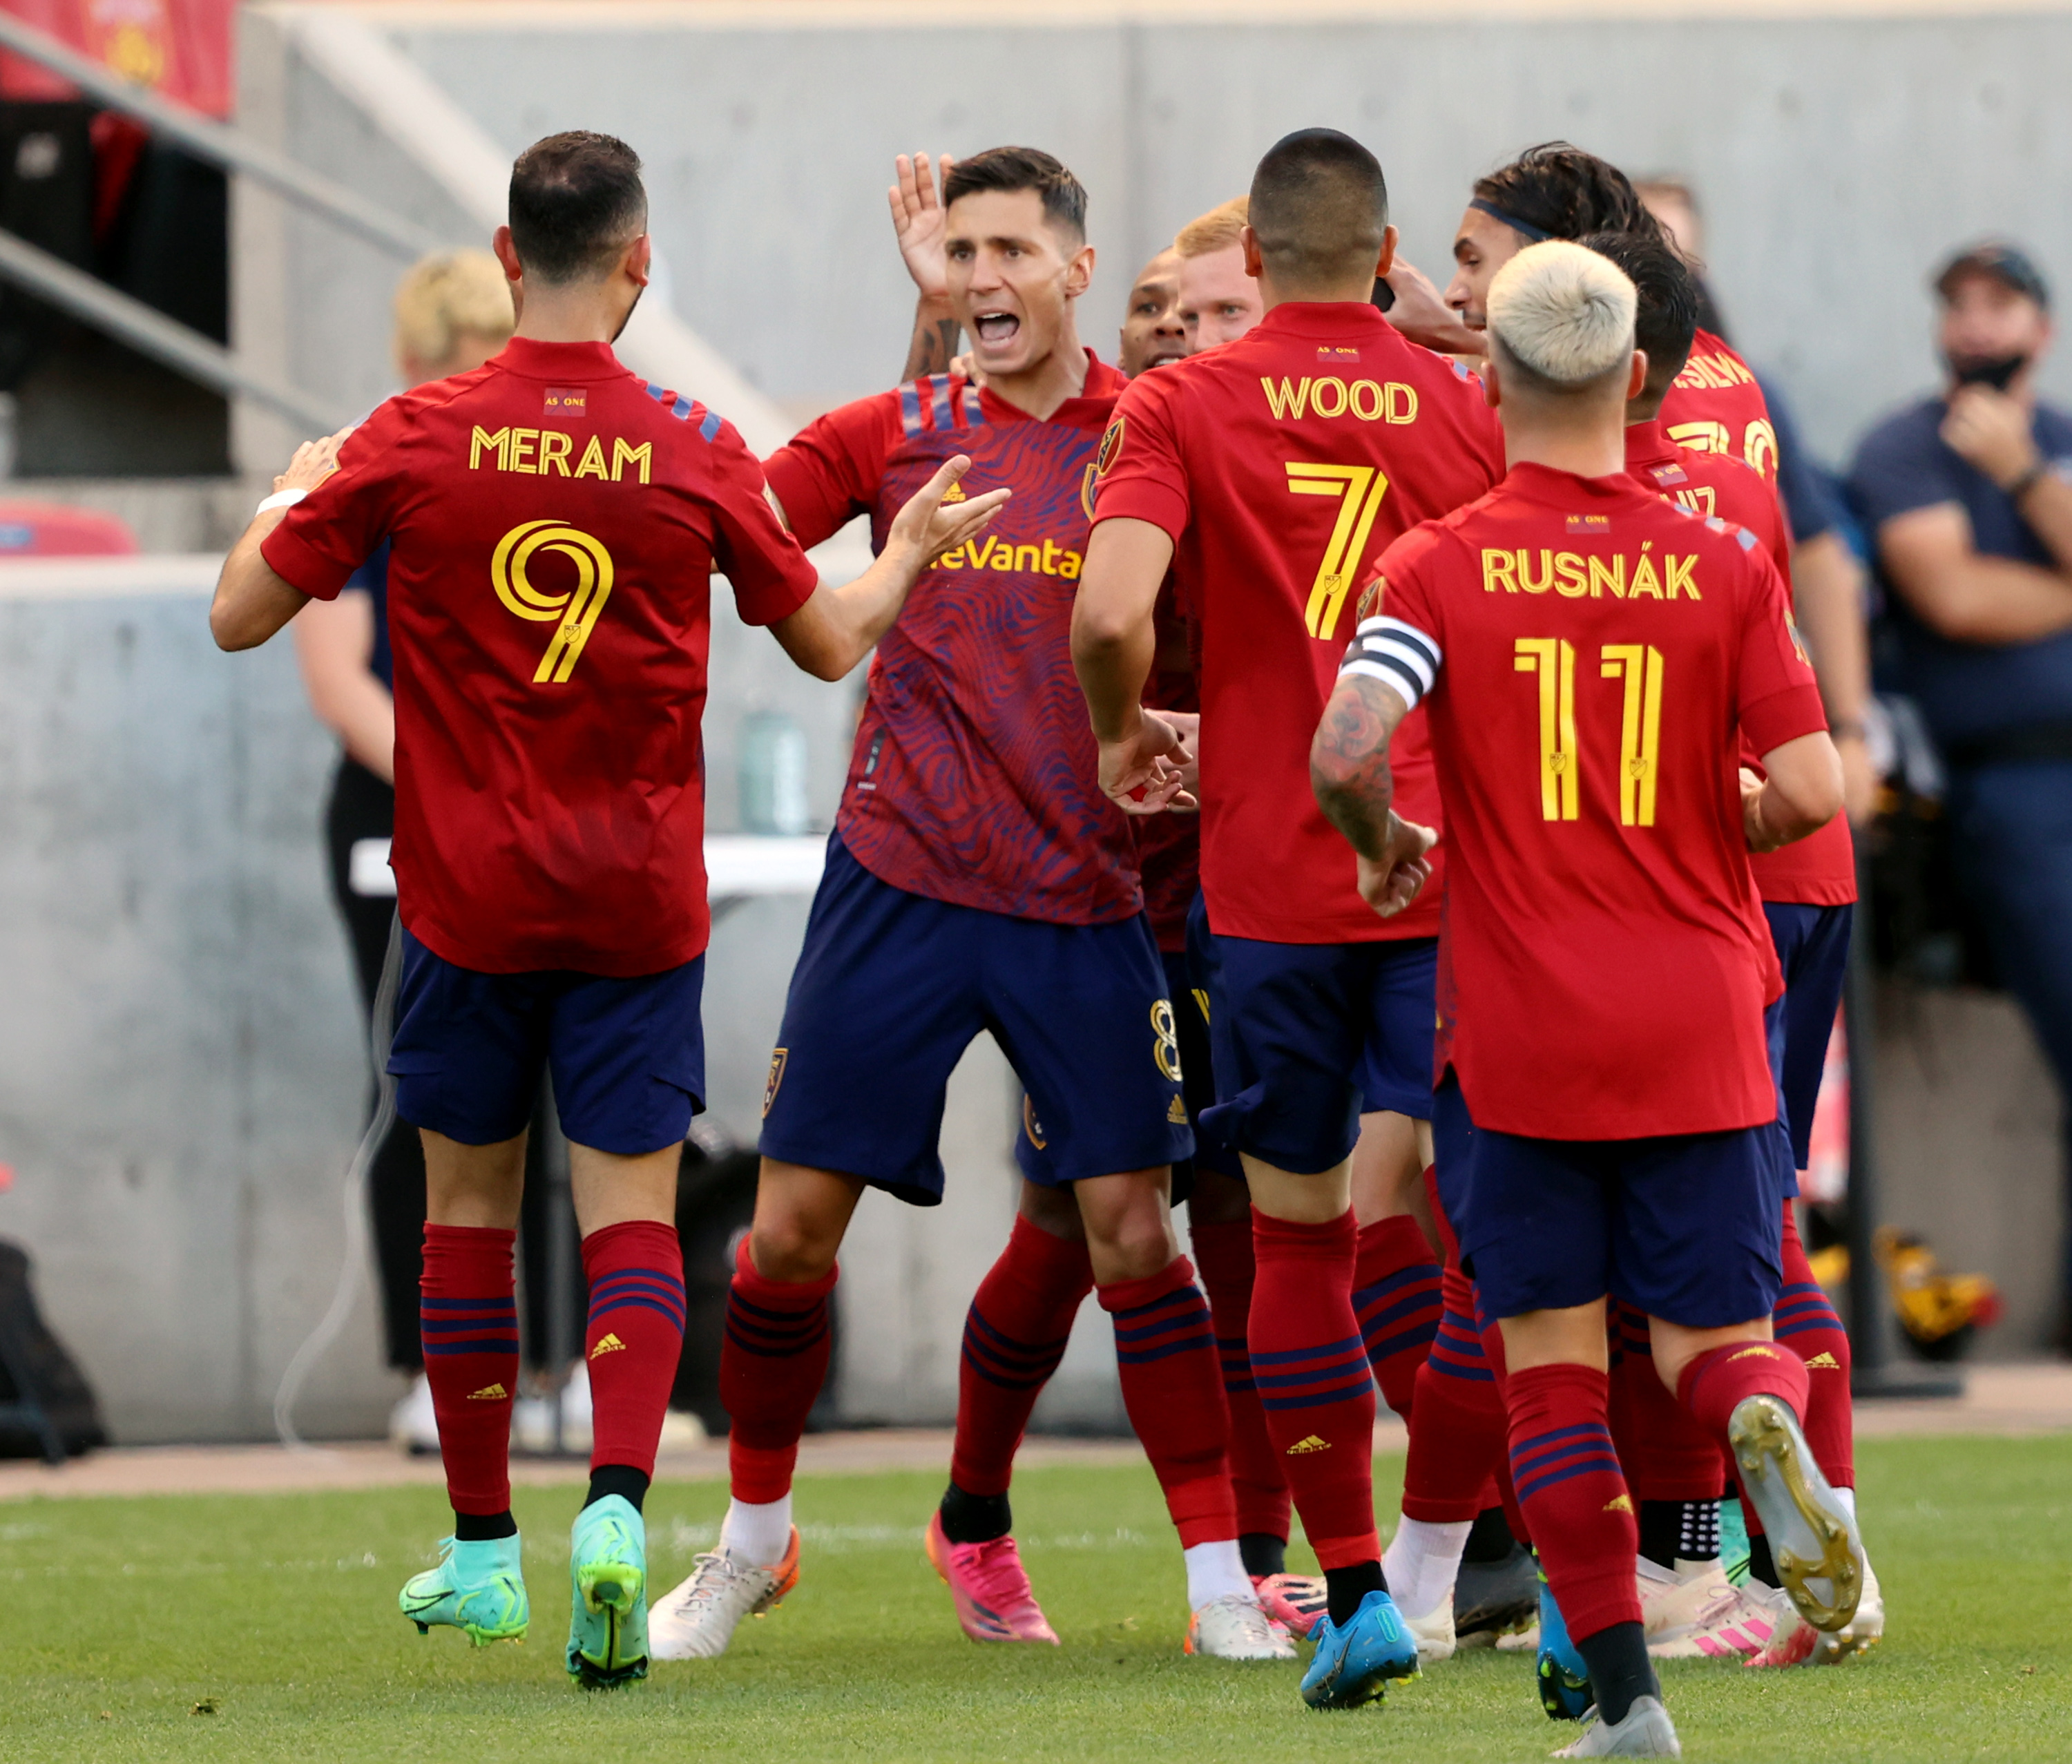 Real Salt Lake midfielder Damir Kreilach (8) celebrates a quick goal with teammates as Real Salt Lake and Vancouver FC play at Rio Tinto Stadium in Sandy on Wednesday, July 7, 2021.